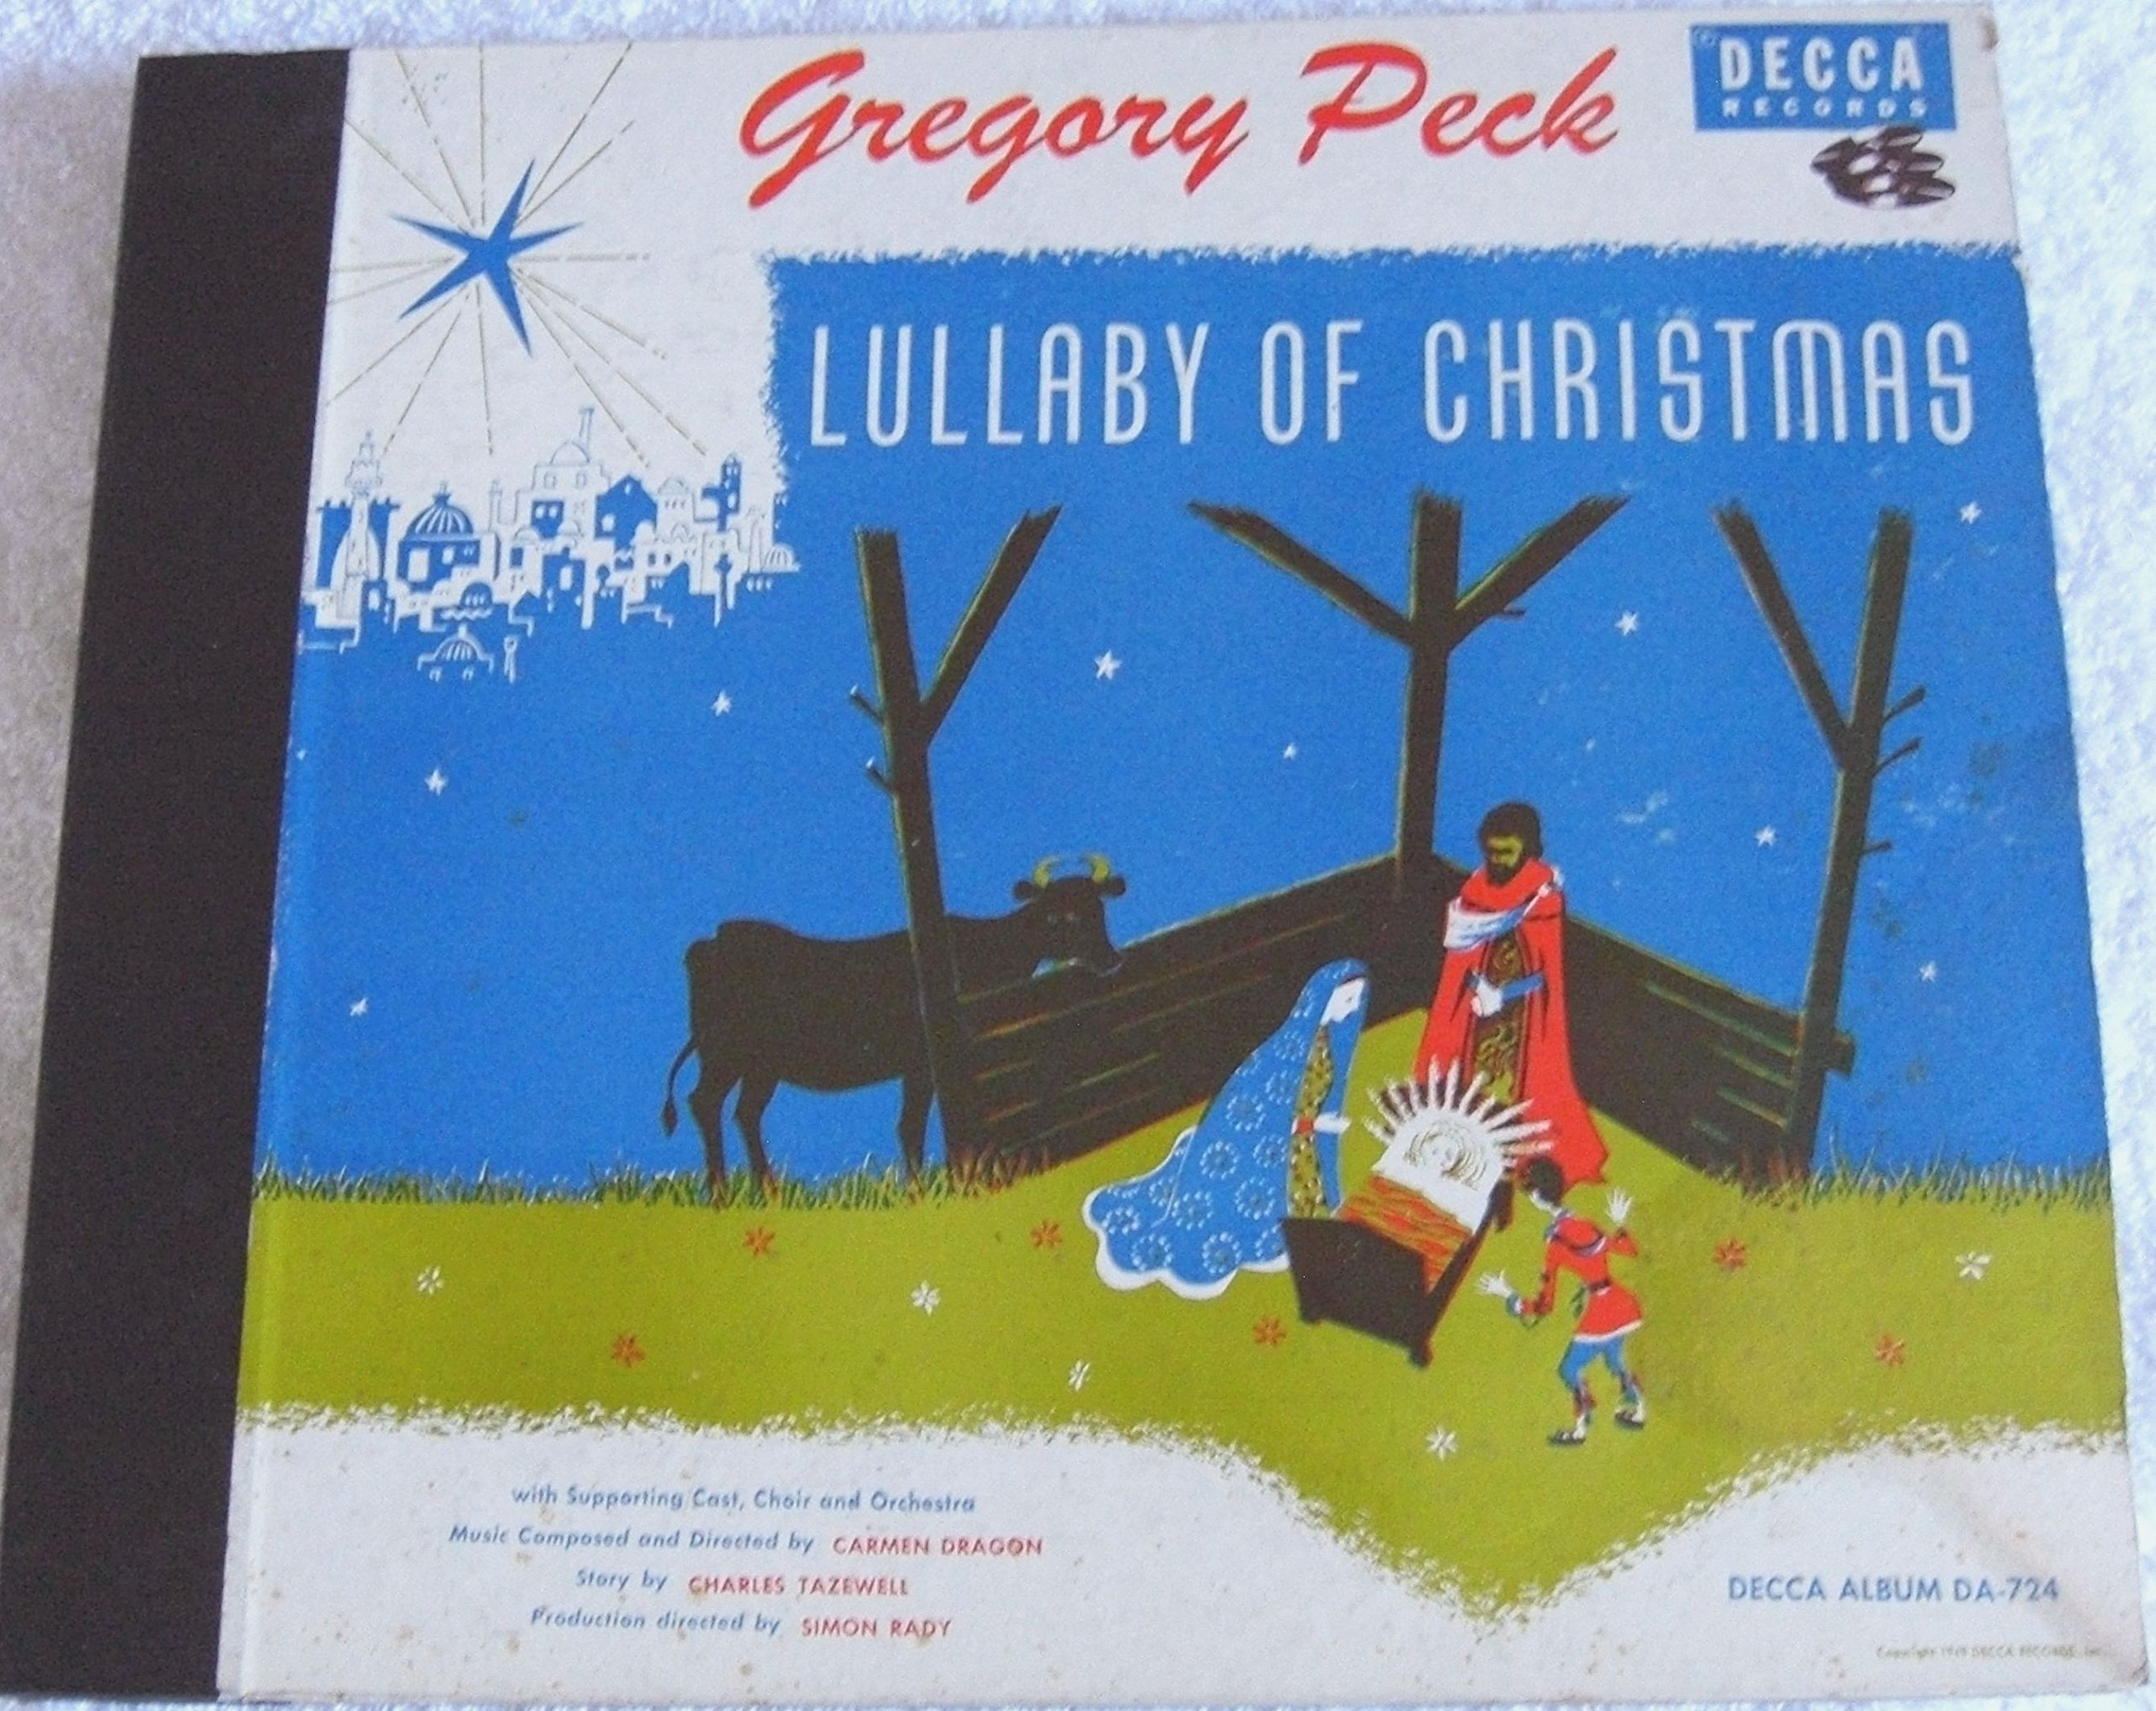 Collectible record album, Gregory Peck; Lullaby of Christmas, 78 RPM, DECCA, Personality Series, by Gregory Peck: Lullaby of Christmas, 78 RPM, DECCA, Personality Series,